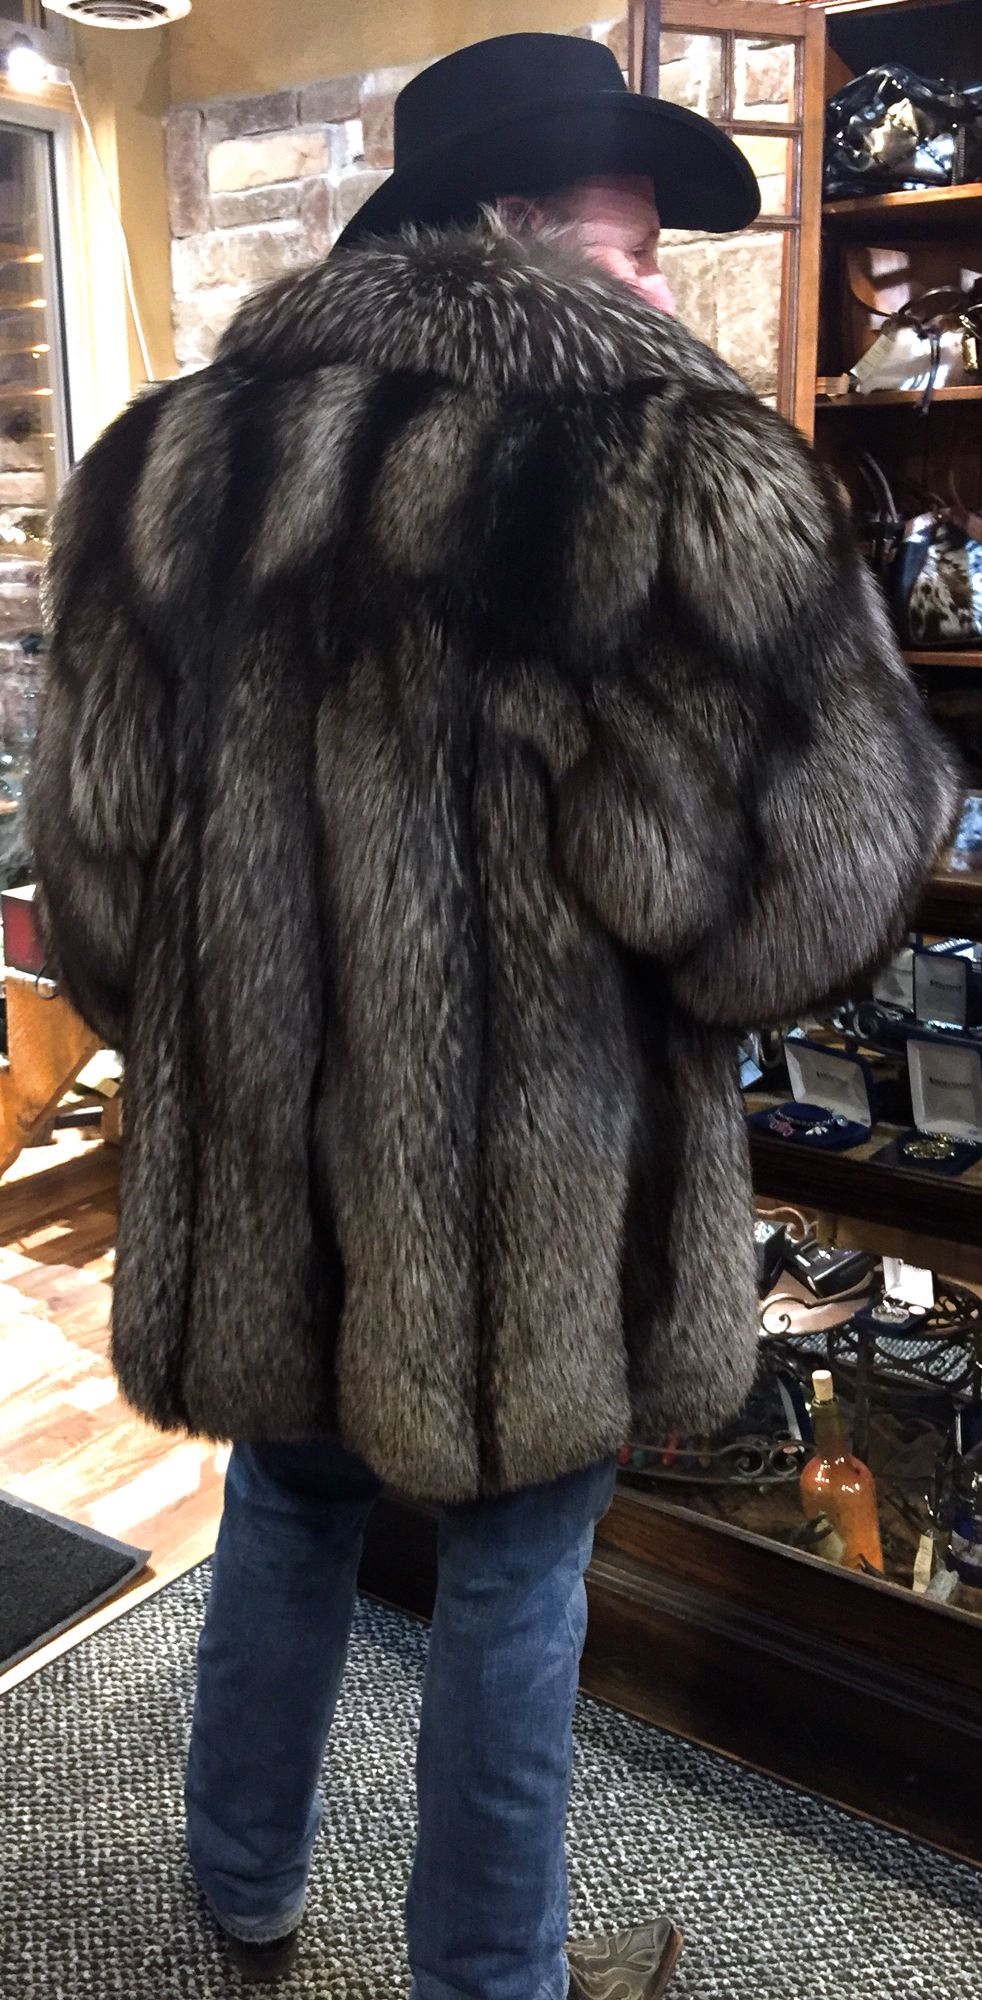 Back view of my new silver fox coat from elements